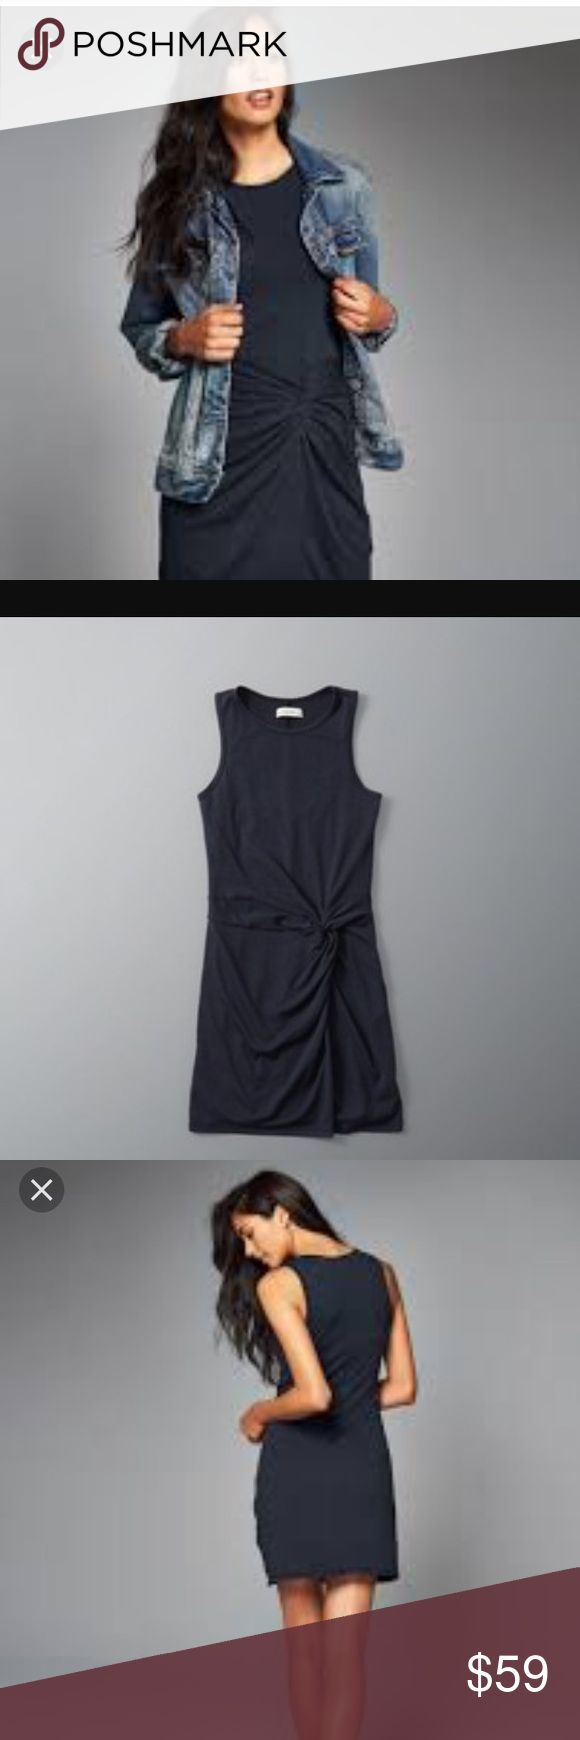 Abercrombie dress Brand New no tags never worn gorgeous on petite girls hot shoes off ur curves sexy Abercrombie & Fitch Dresses Midi